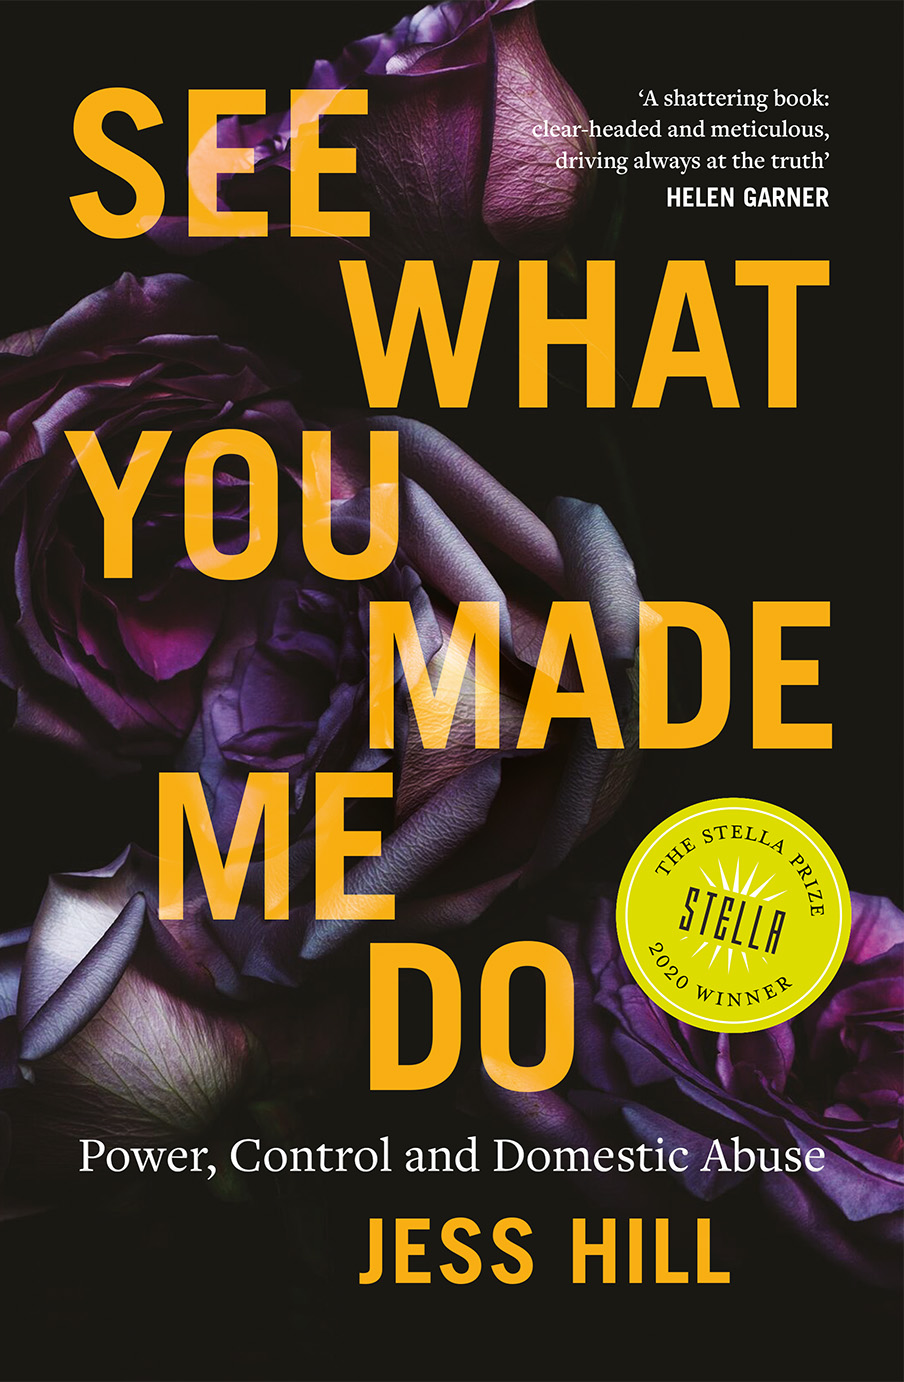 See What You Made Me Do by Jess Hill